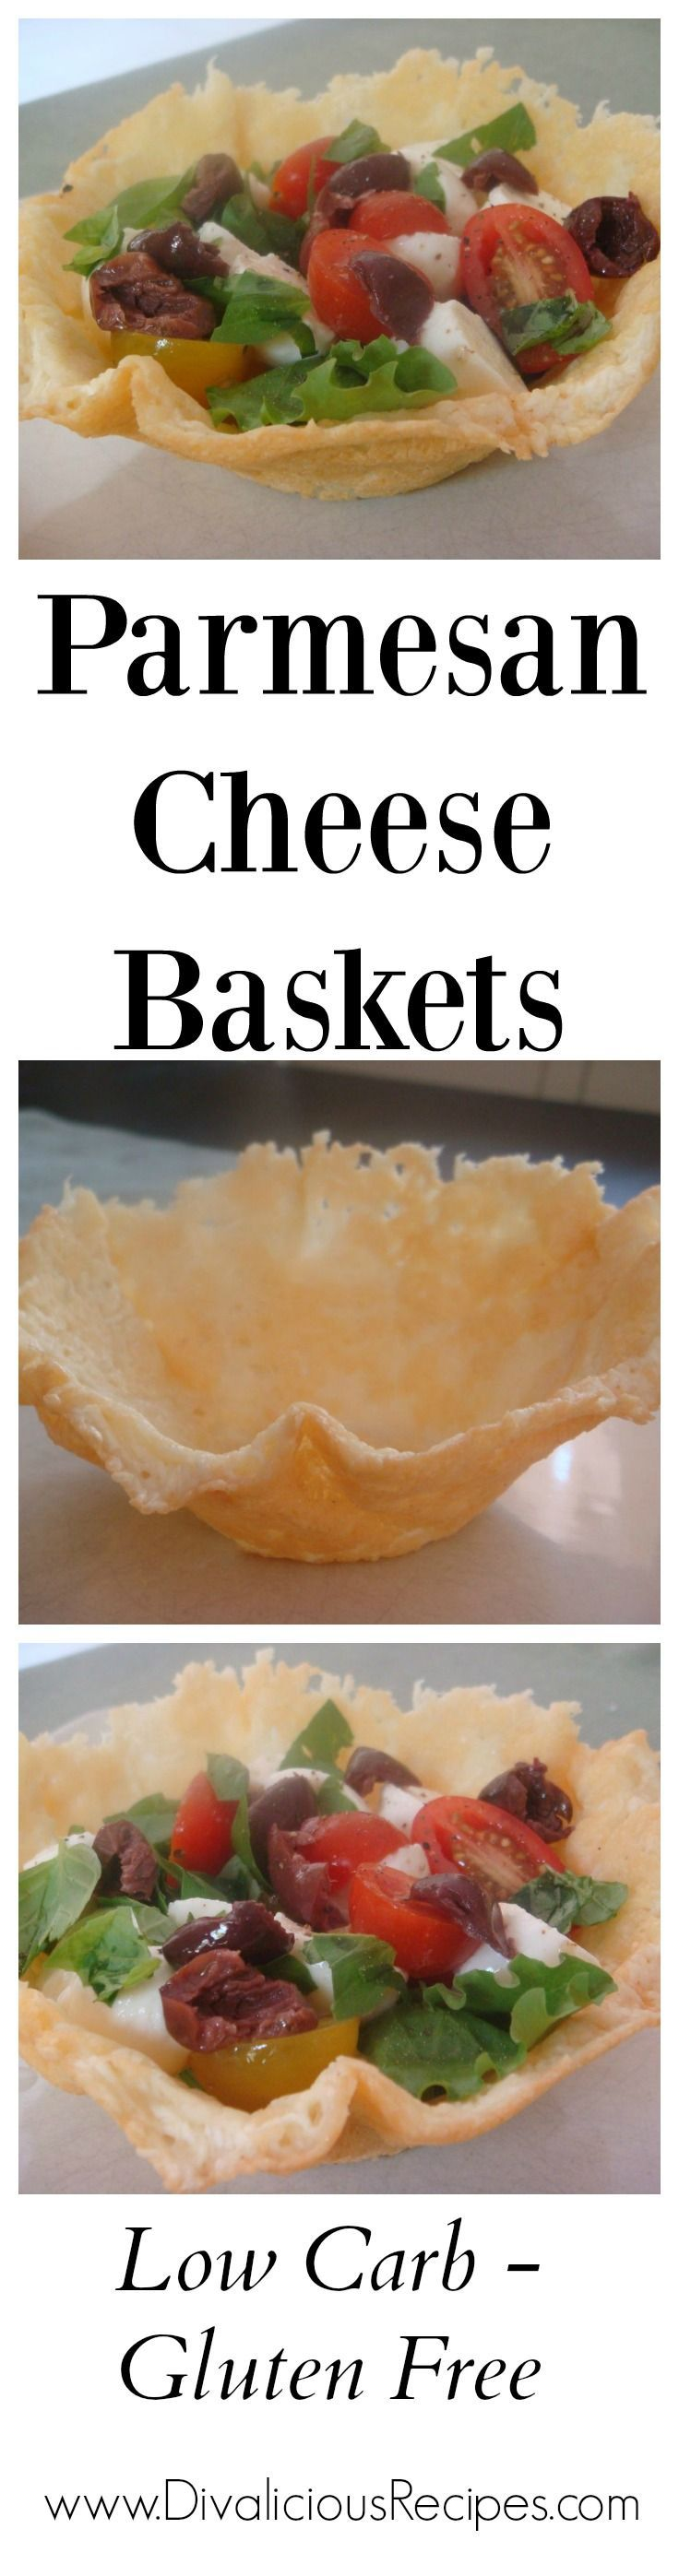 Parmesan cheese baskets are so simple to make.  It's basically a bowl made out of cheese!  Fill with a salad or even a chilli.  Eat the contents, then eat the bowl!